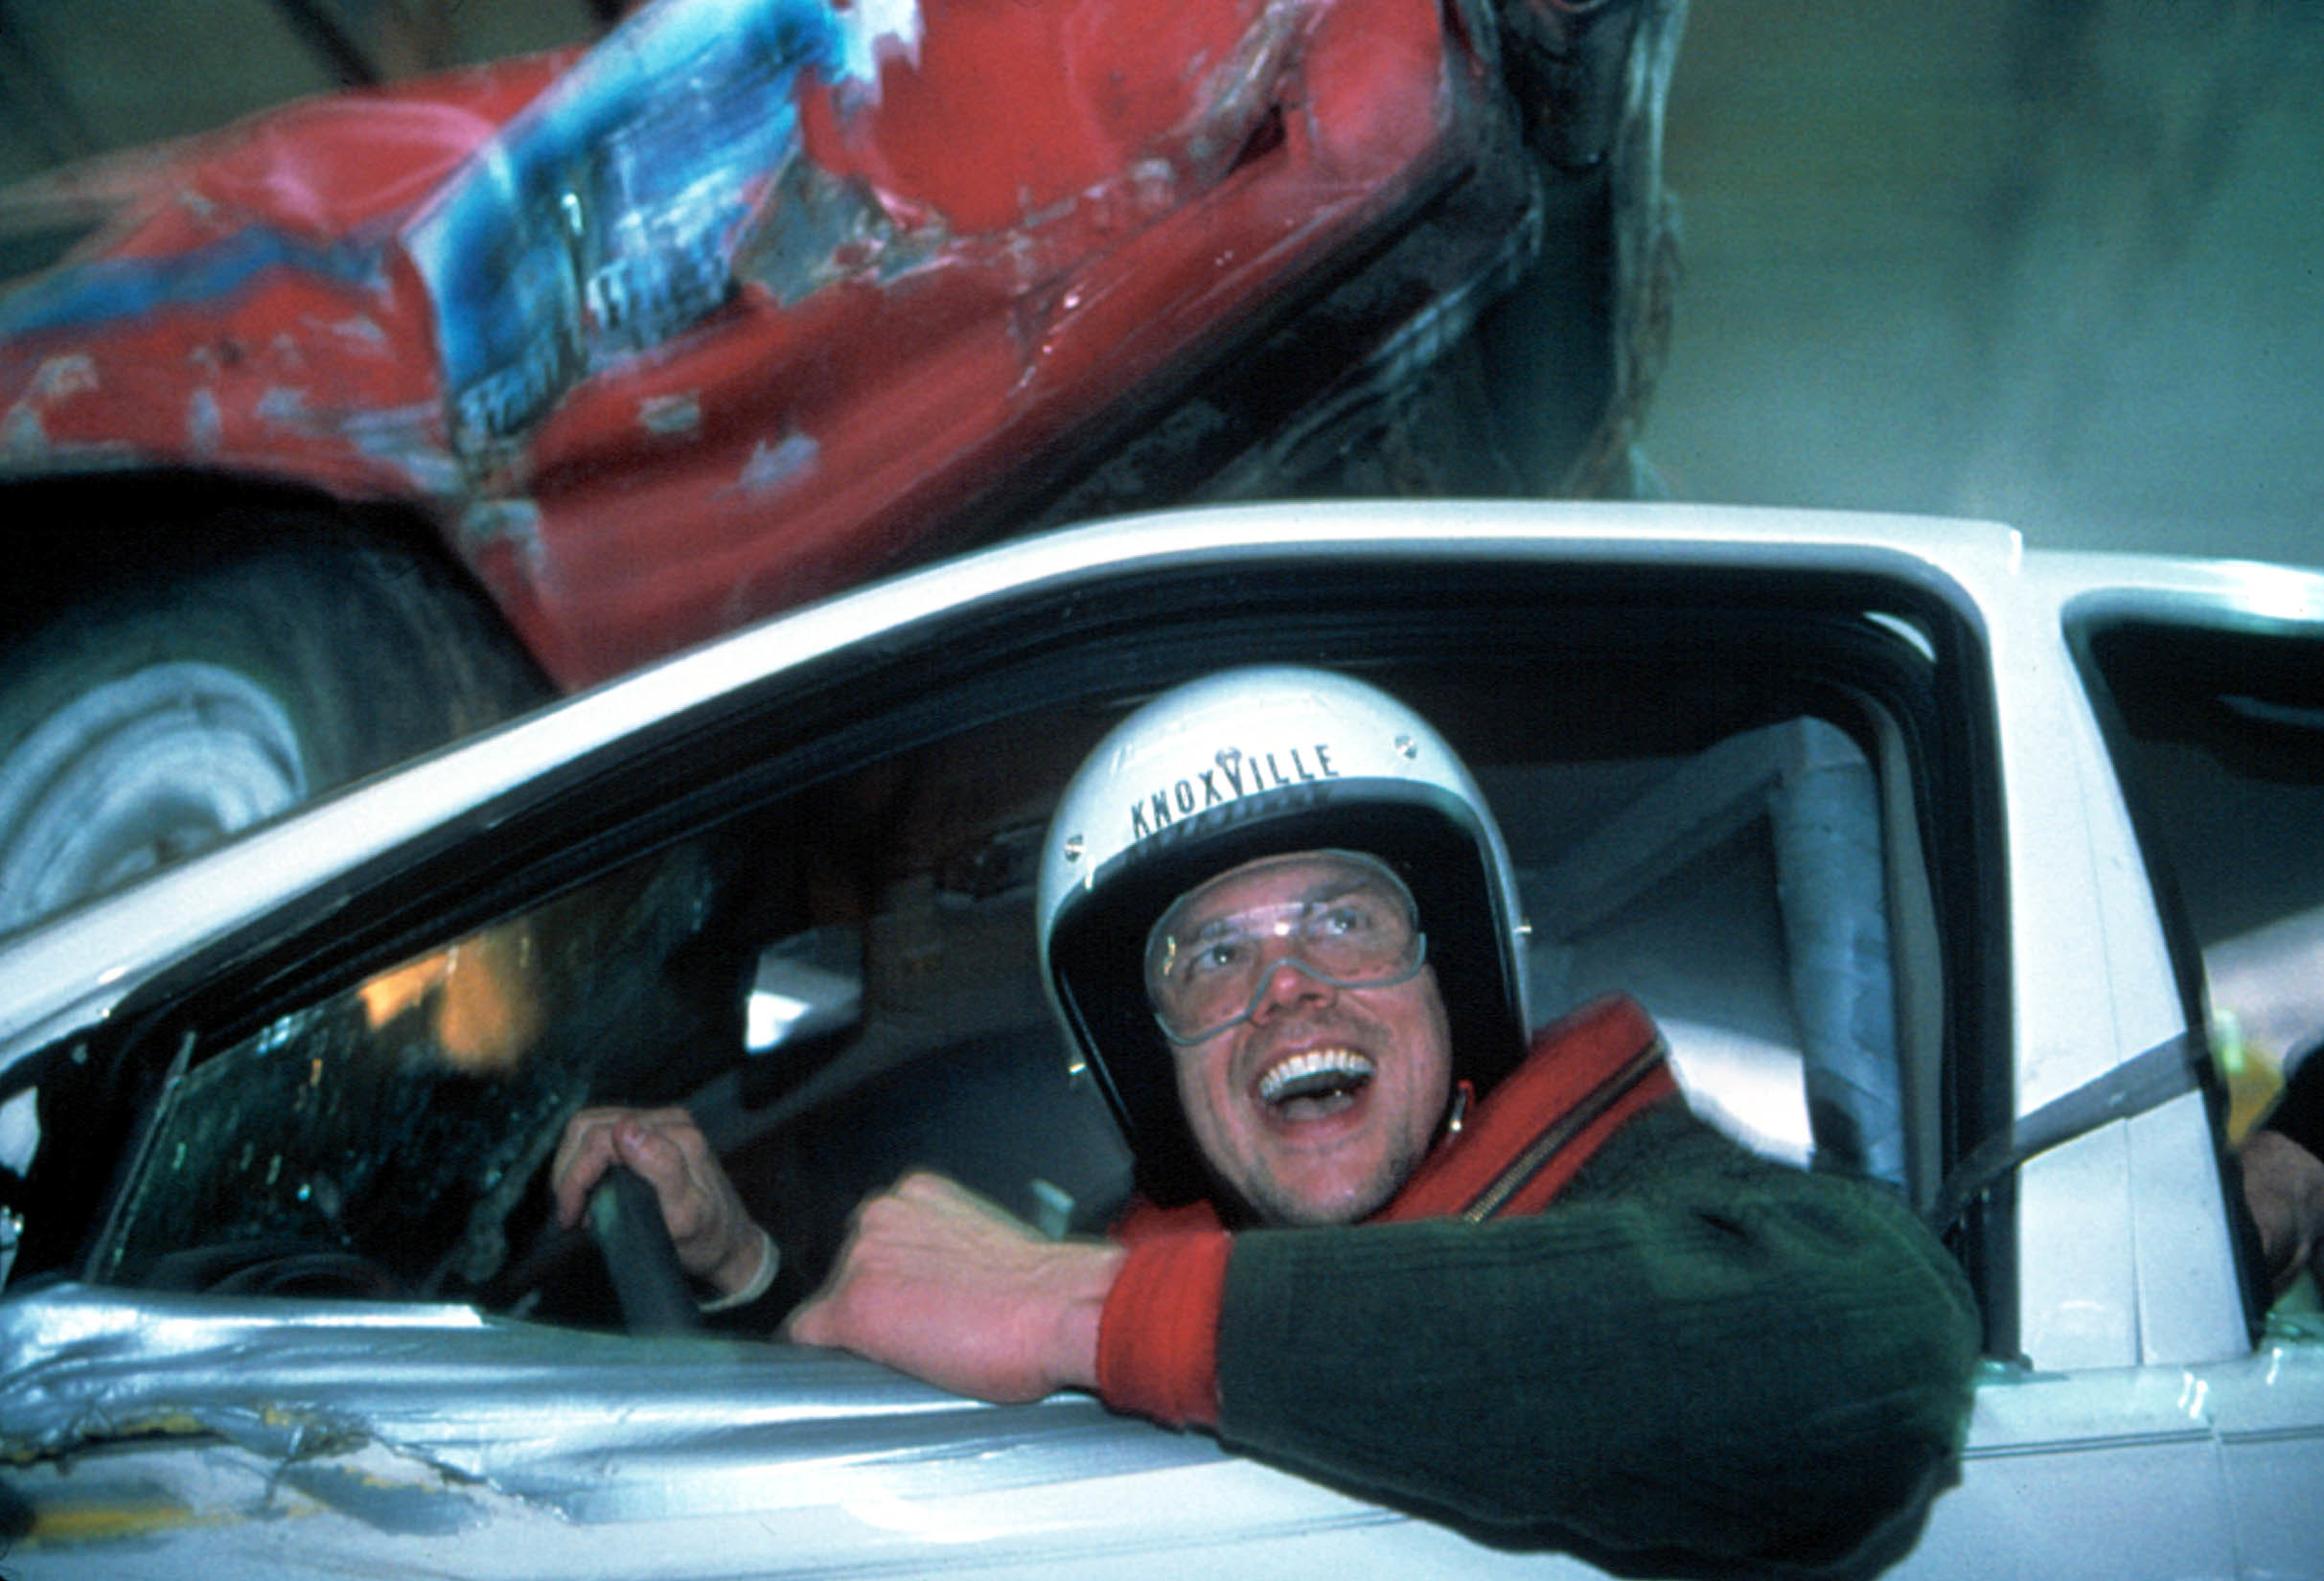 Johnny Knoxville in a car, wearing a helmet